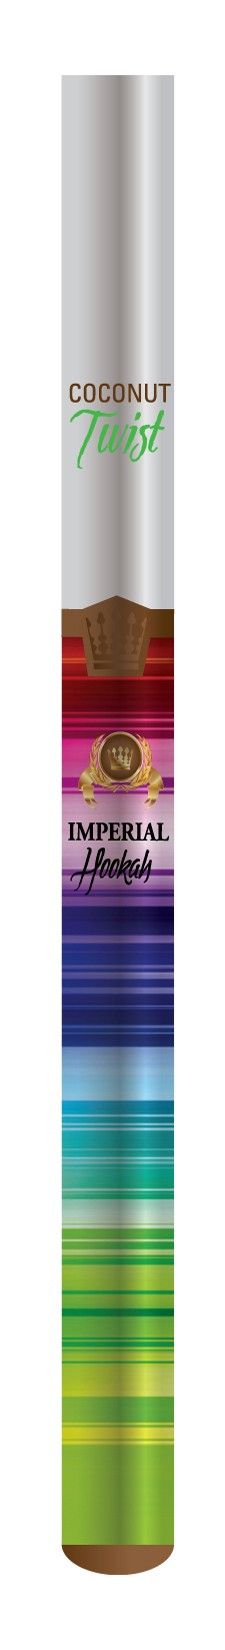 Imperial Hookah: Coconut Twist : Portable Hookah Stick